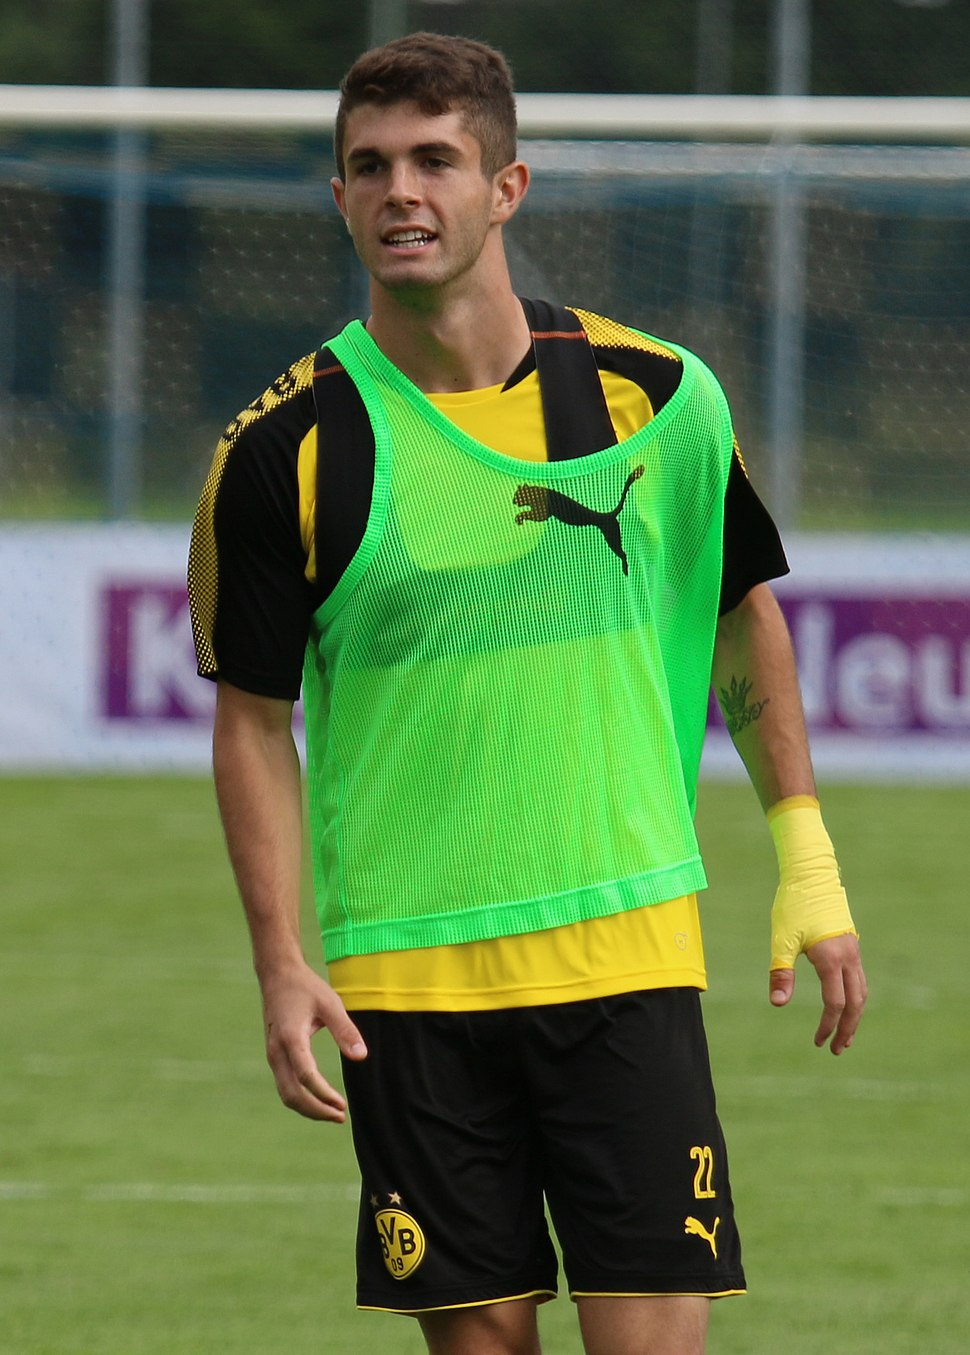 Christian Pulisic 2017 (cropped)